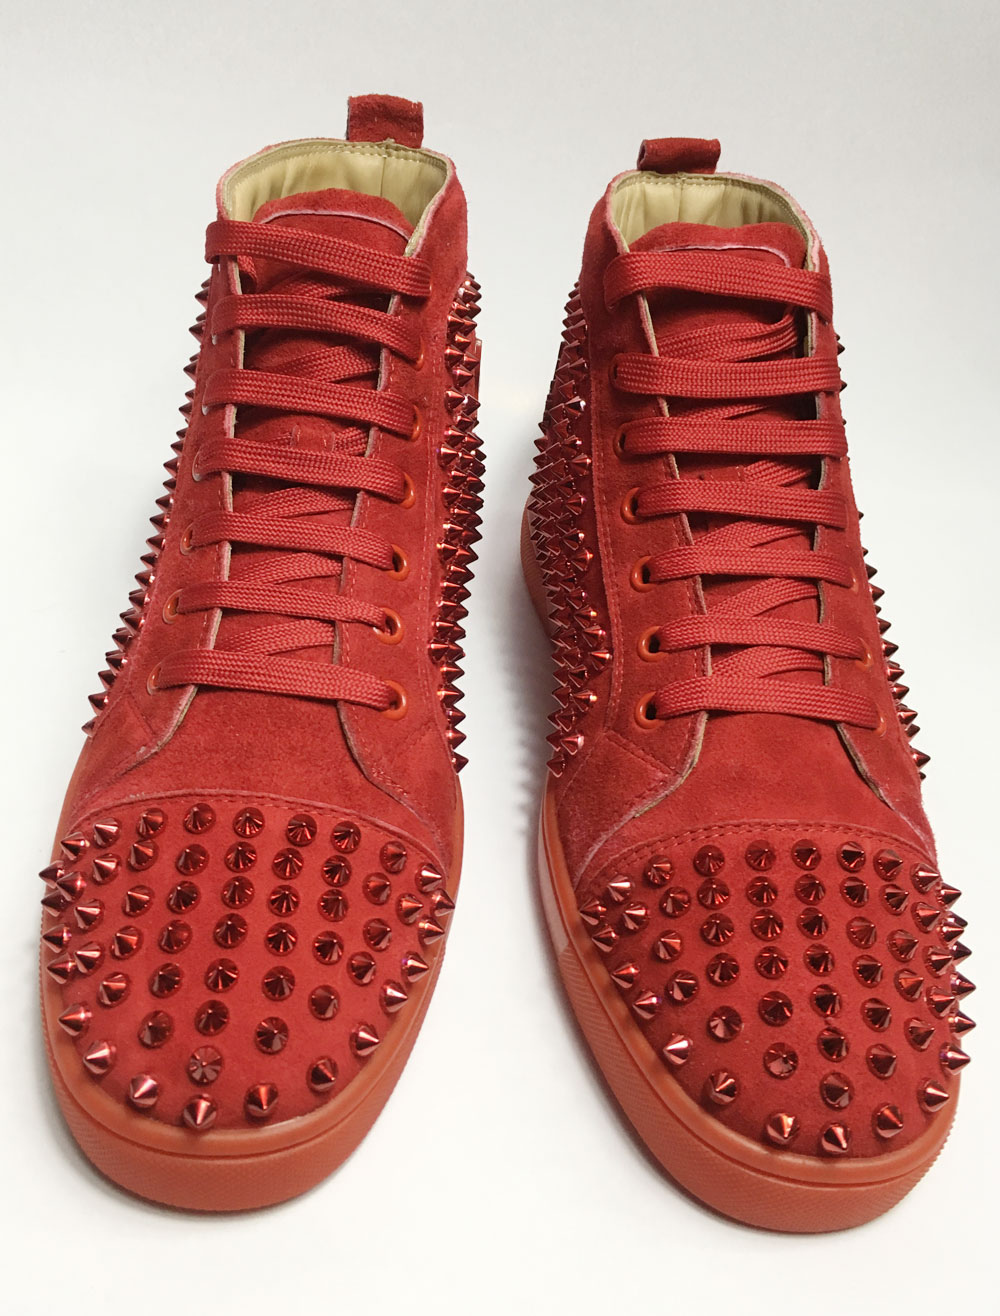 1359931bfff2 Red Skate Shoes 2019 Men Spike Shoes Suede Round Toe Lace Up High Top  Sneakers - Milanoo.com